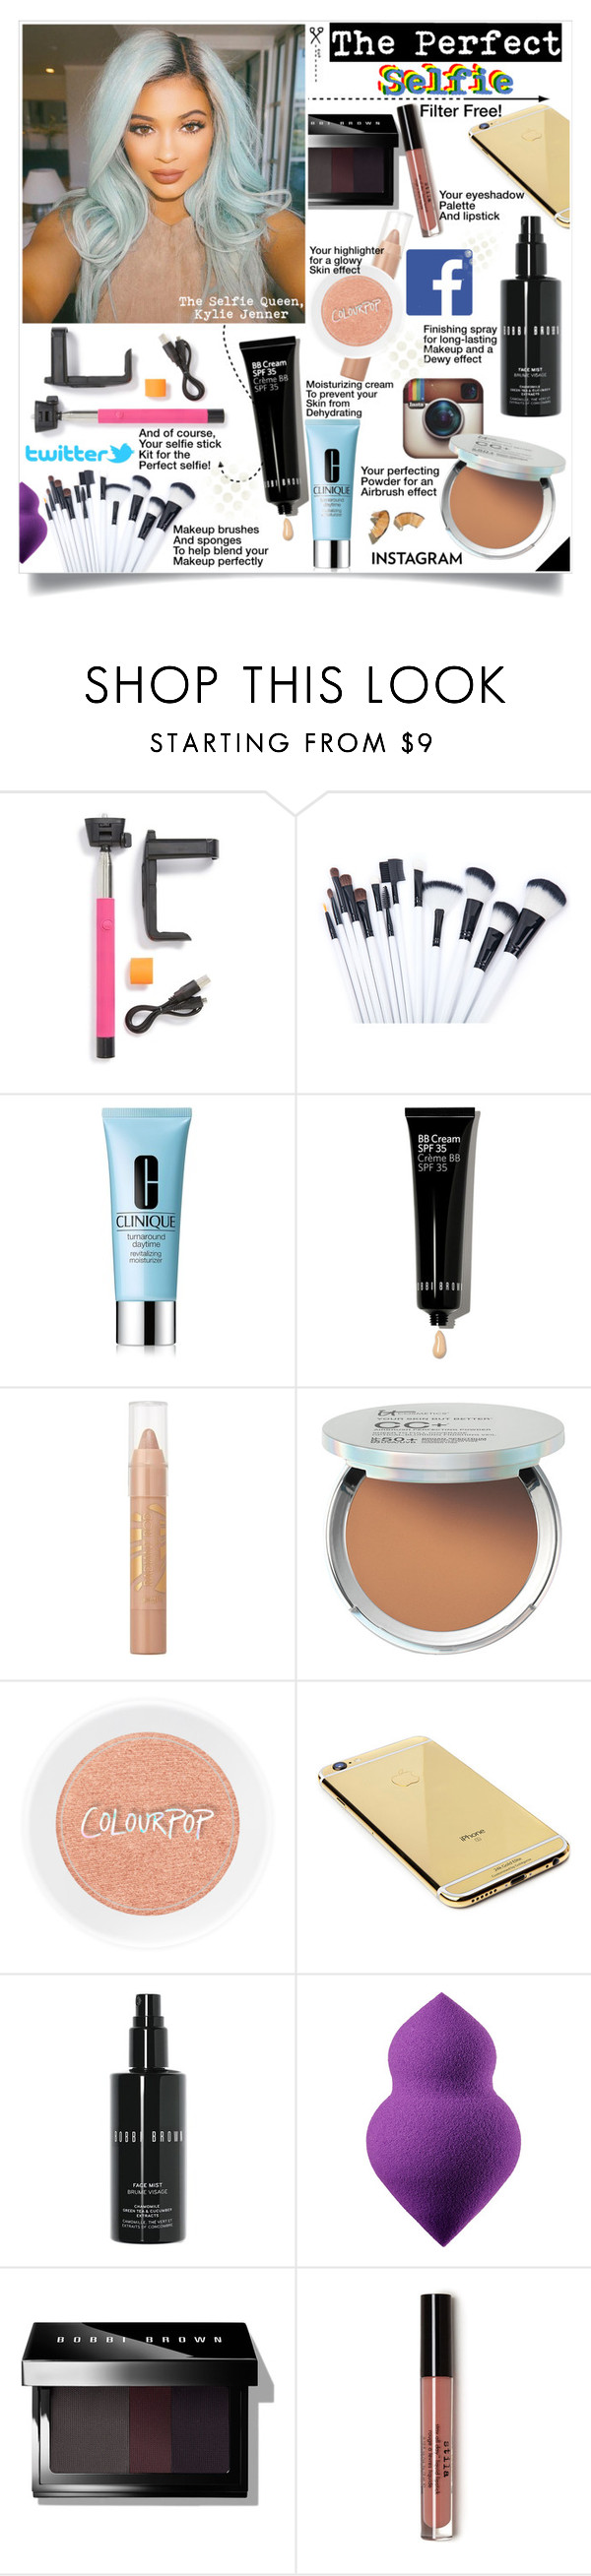 """The Perfect Selfie Makeup Look"" by chocolate-addicted-angel ❤ liked on Polyvore featuring beauty, Clinique, Bobbi Brown Cosmetics, Barry M, It Cosmetics, Goldgenie and Sephora Collection"